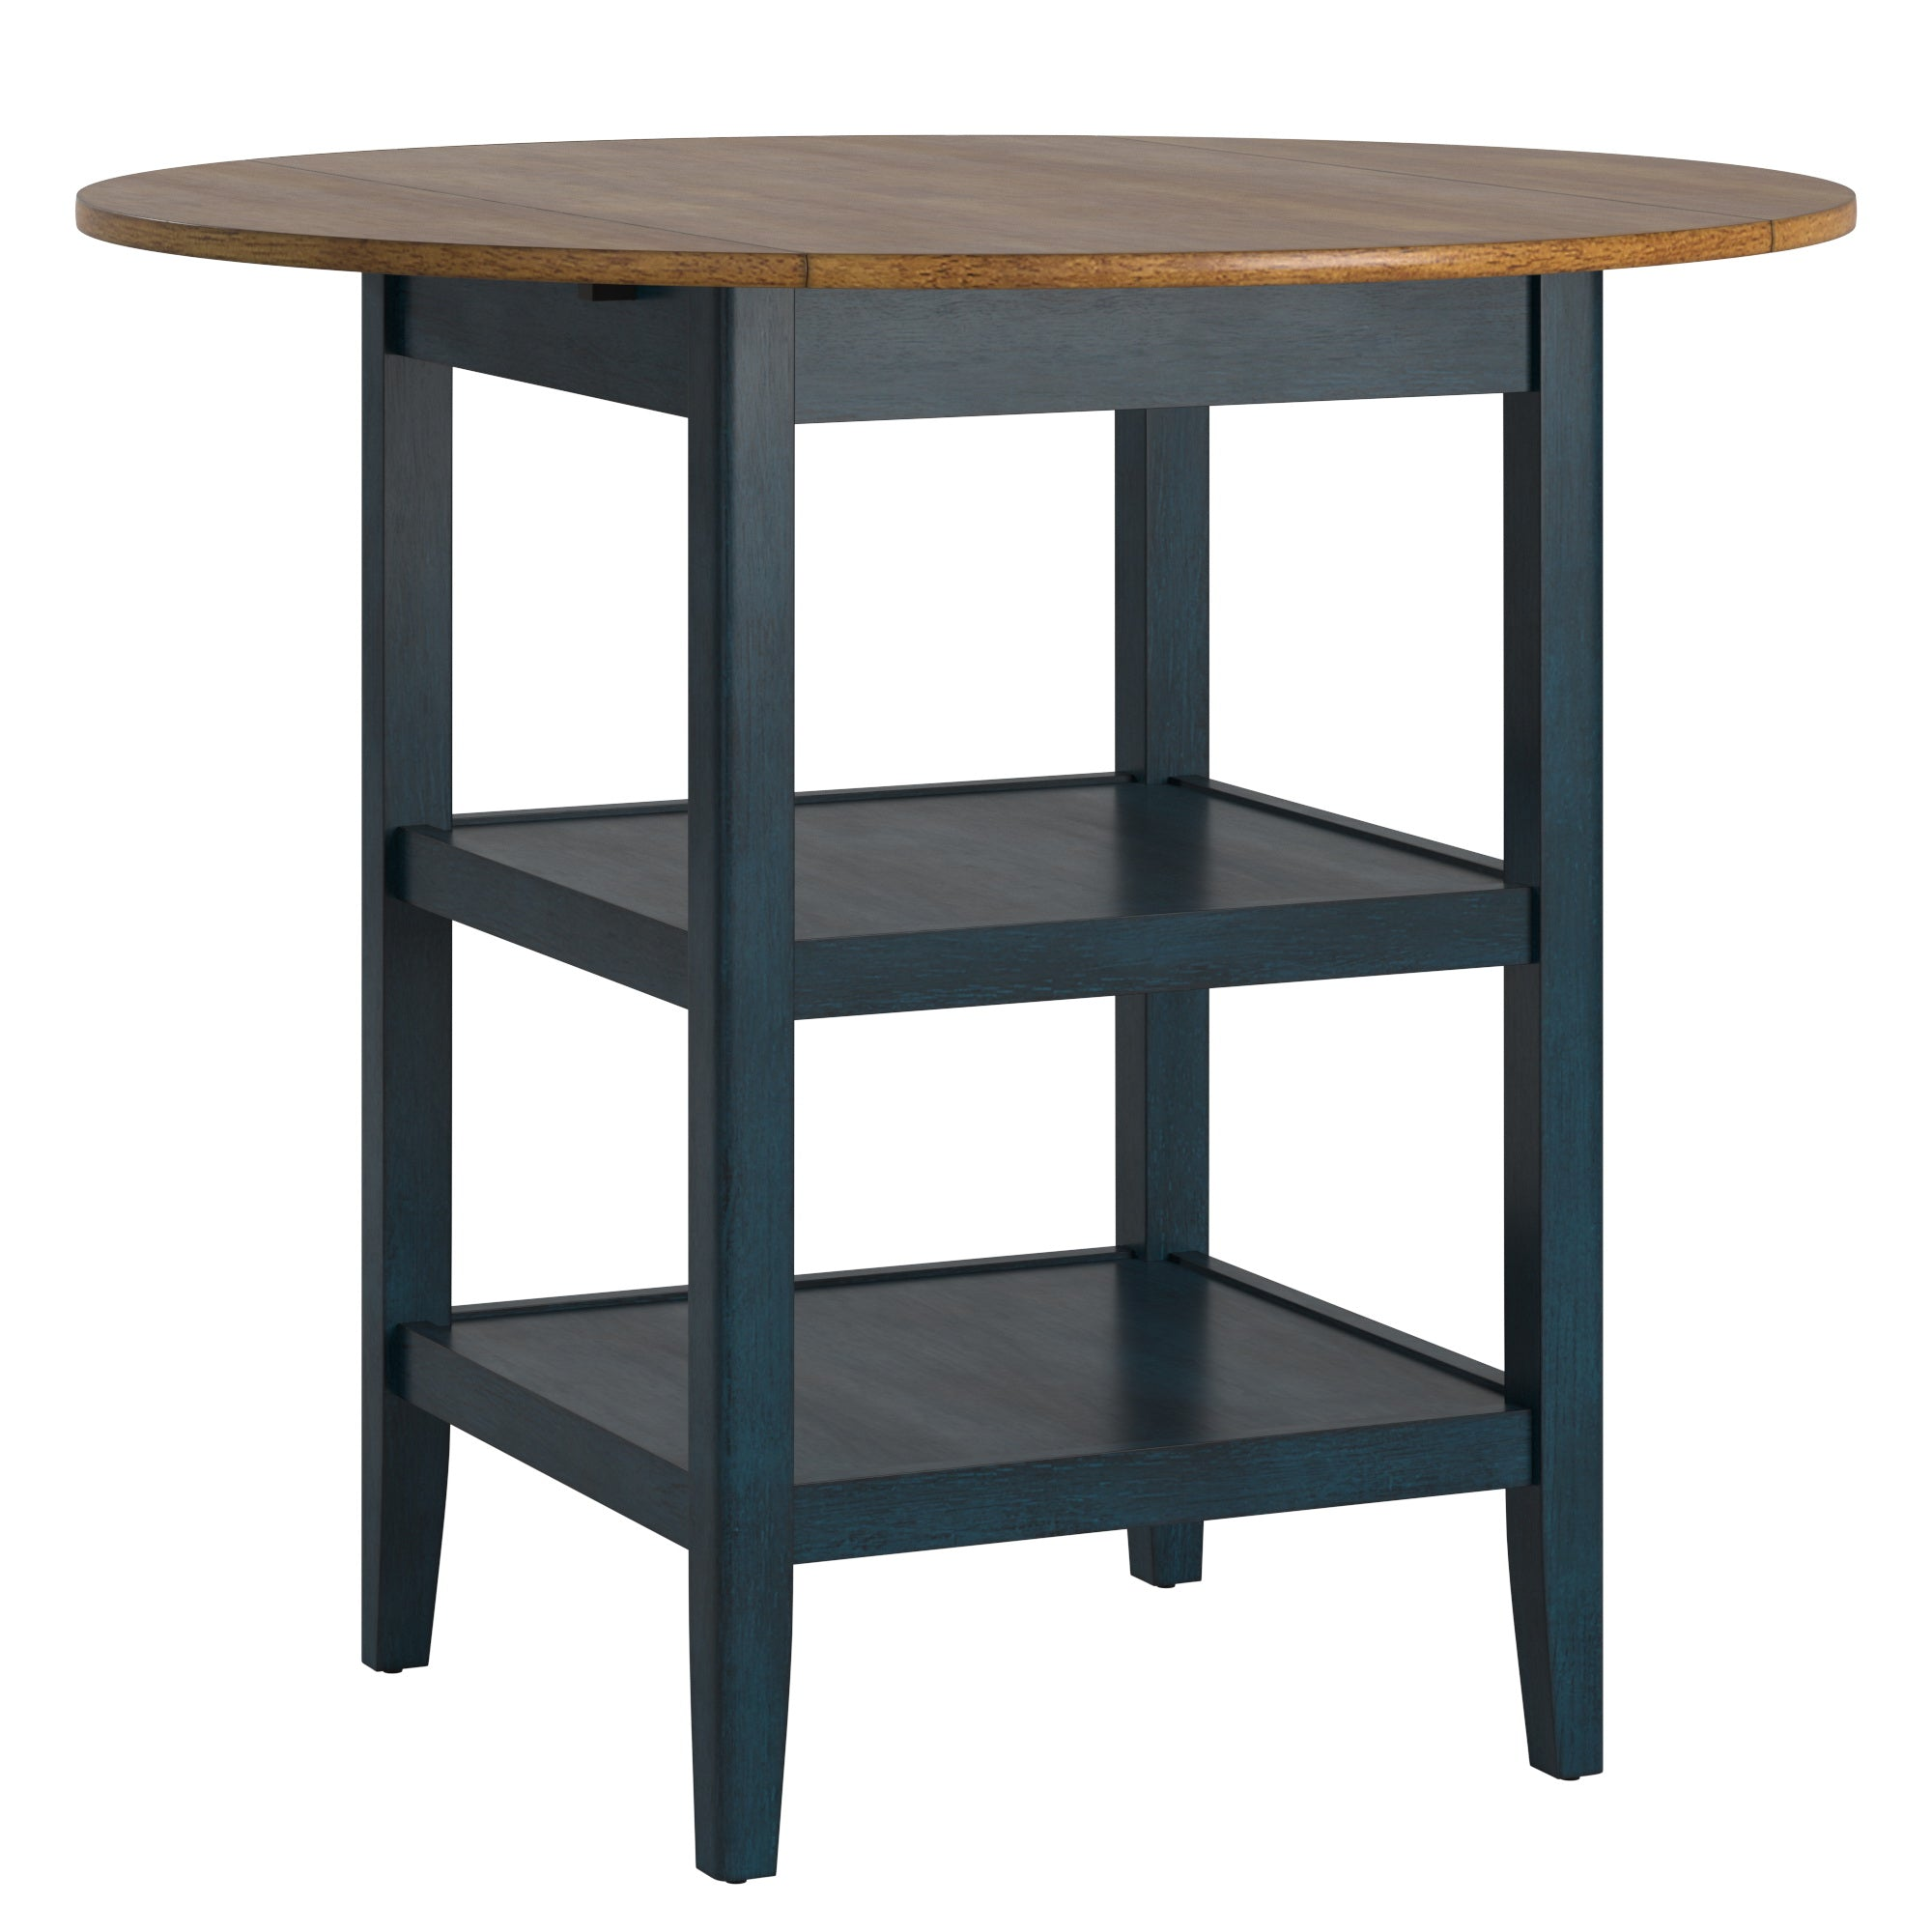 Antique Finish 2 Side Drop Leaf Round Counter Height Table - Oak and Antique Denim Finish